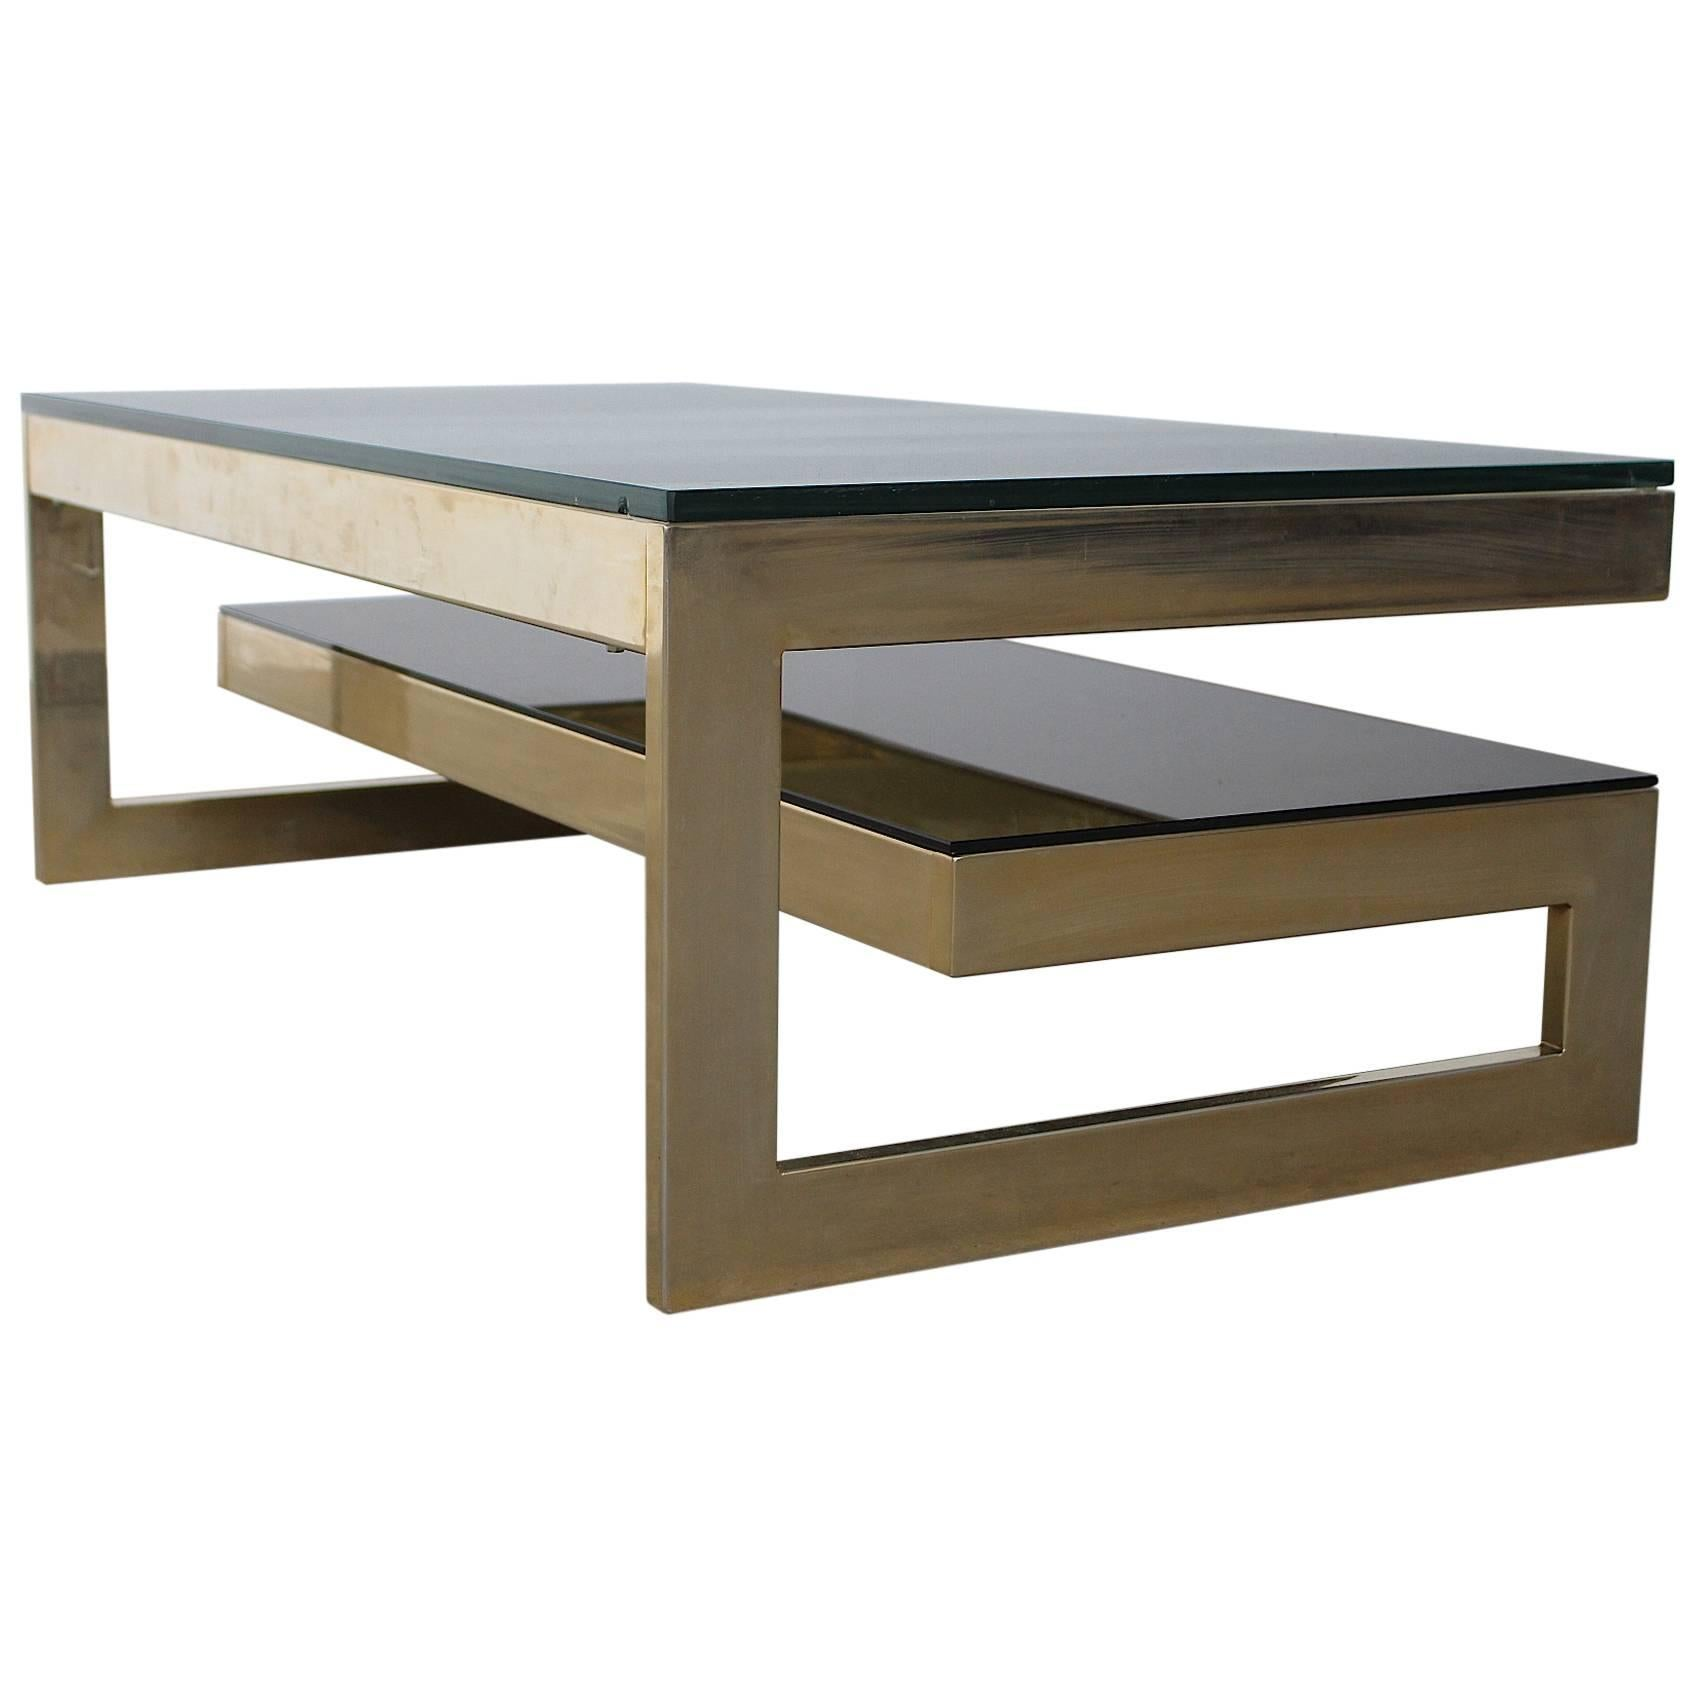 Beau G Shaped 23 Carat Gold Plated Two Level Coffee Table, Maison